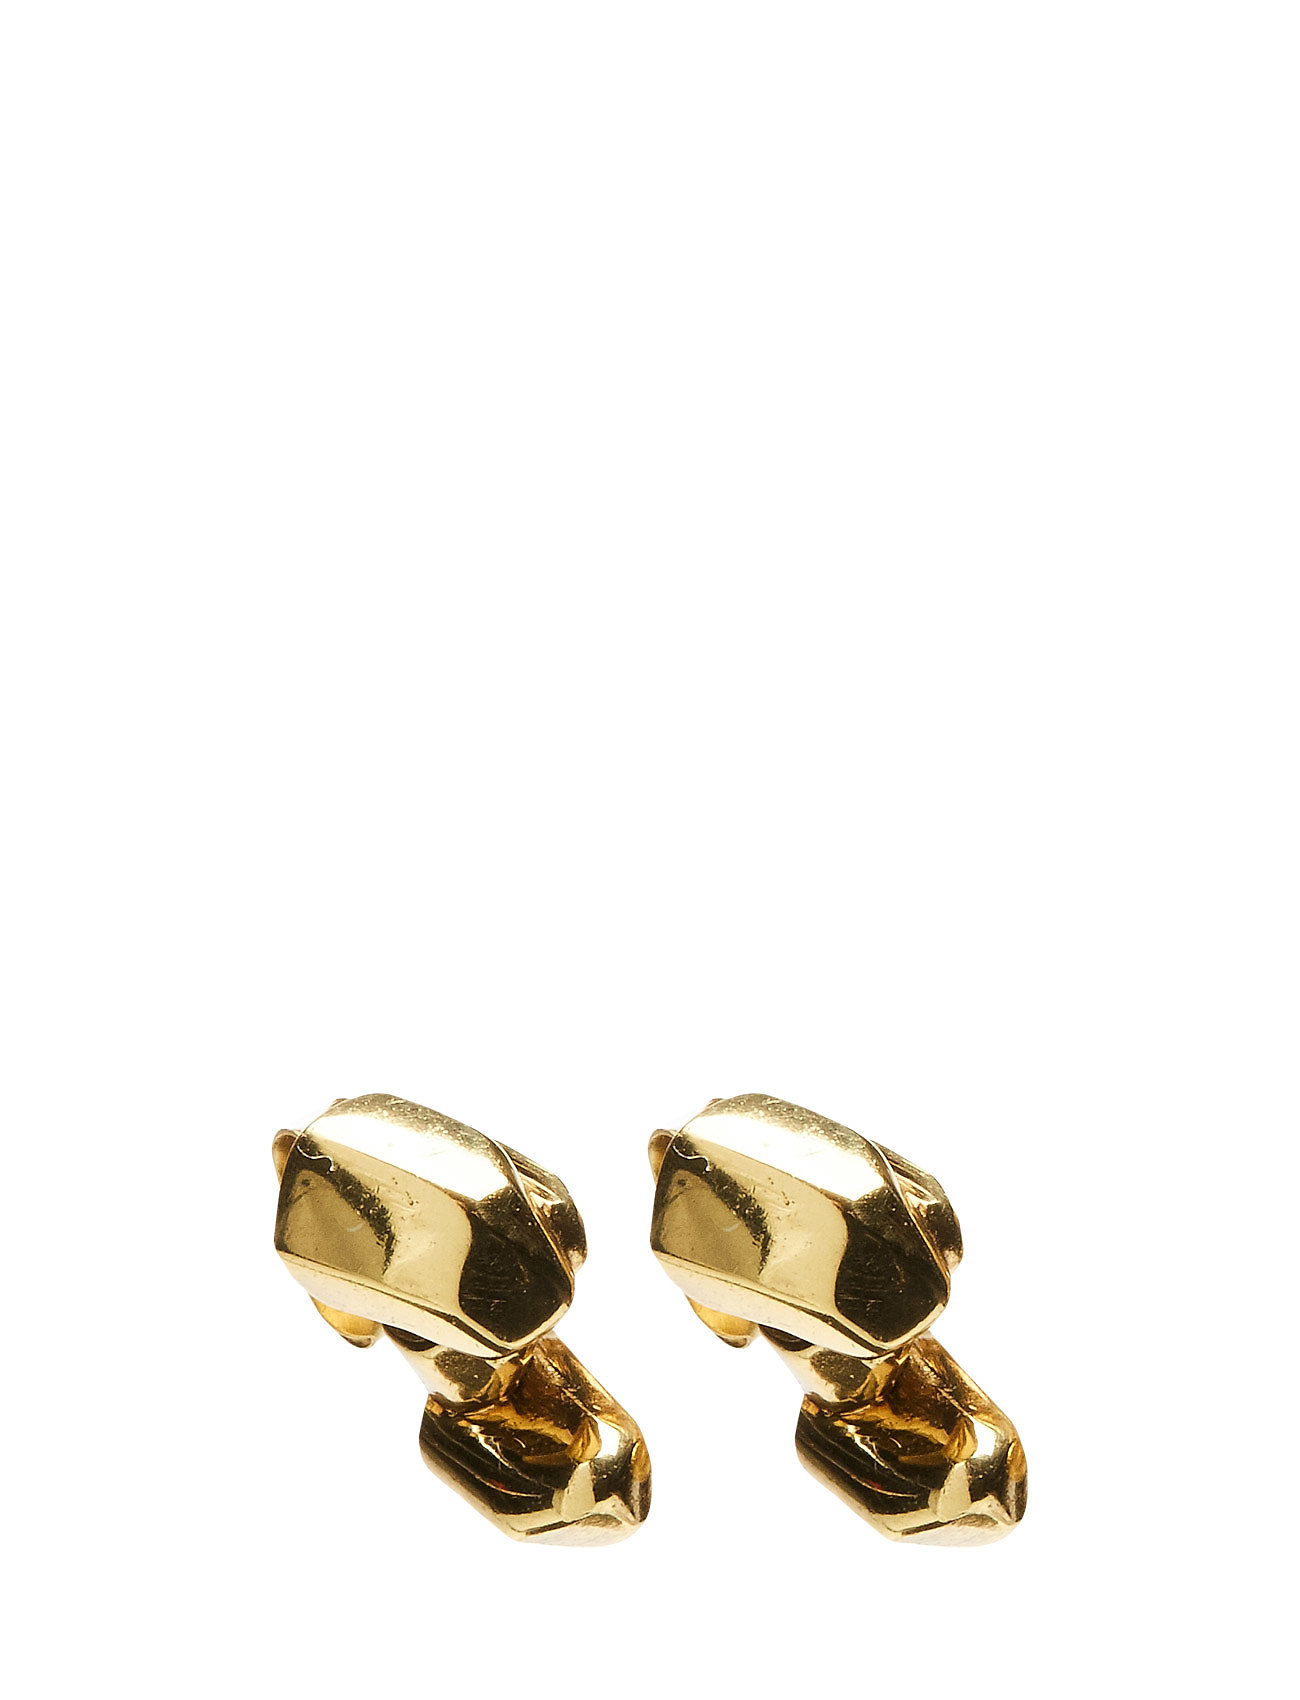 Cornelia Webb CHARMED STUD EARRING SMALL